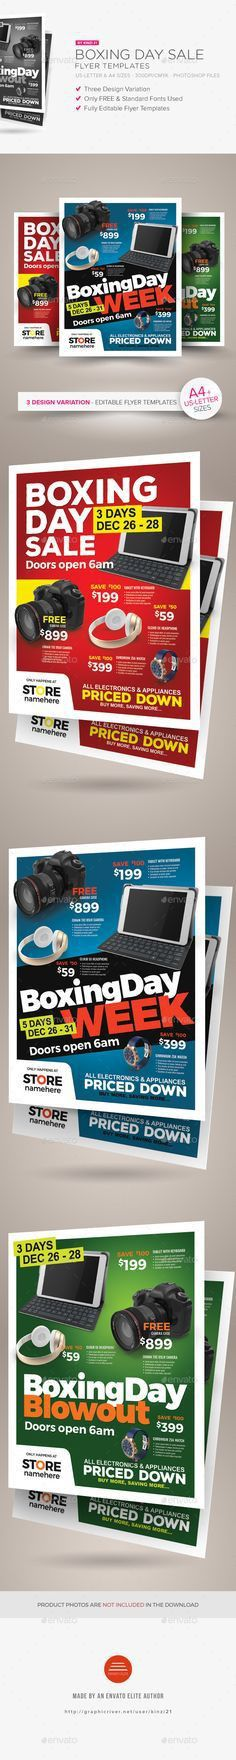 Cyber Monday Sale Flyer Templates | Flyer template, Psd templates ...